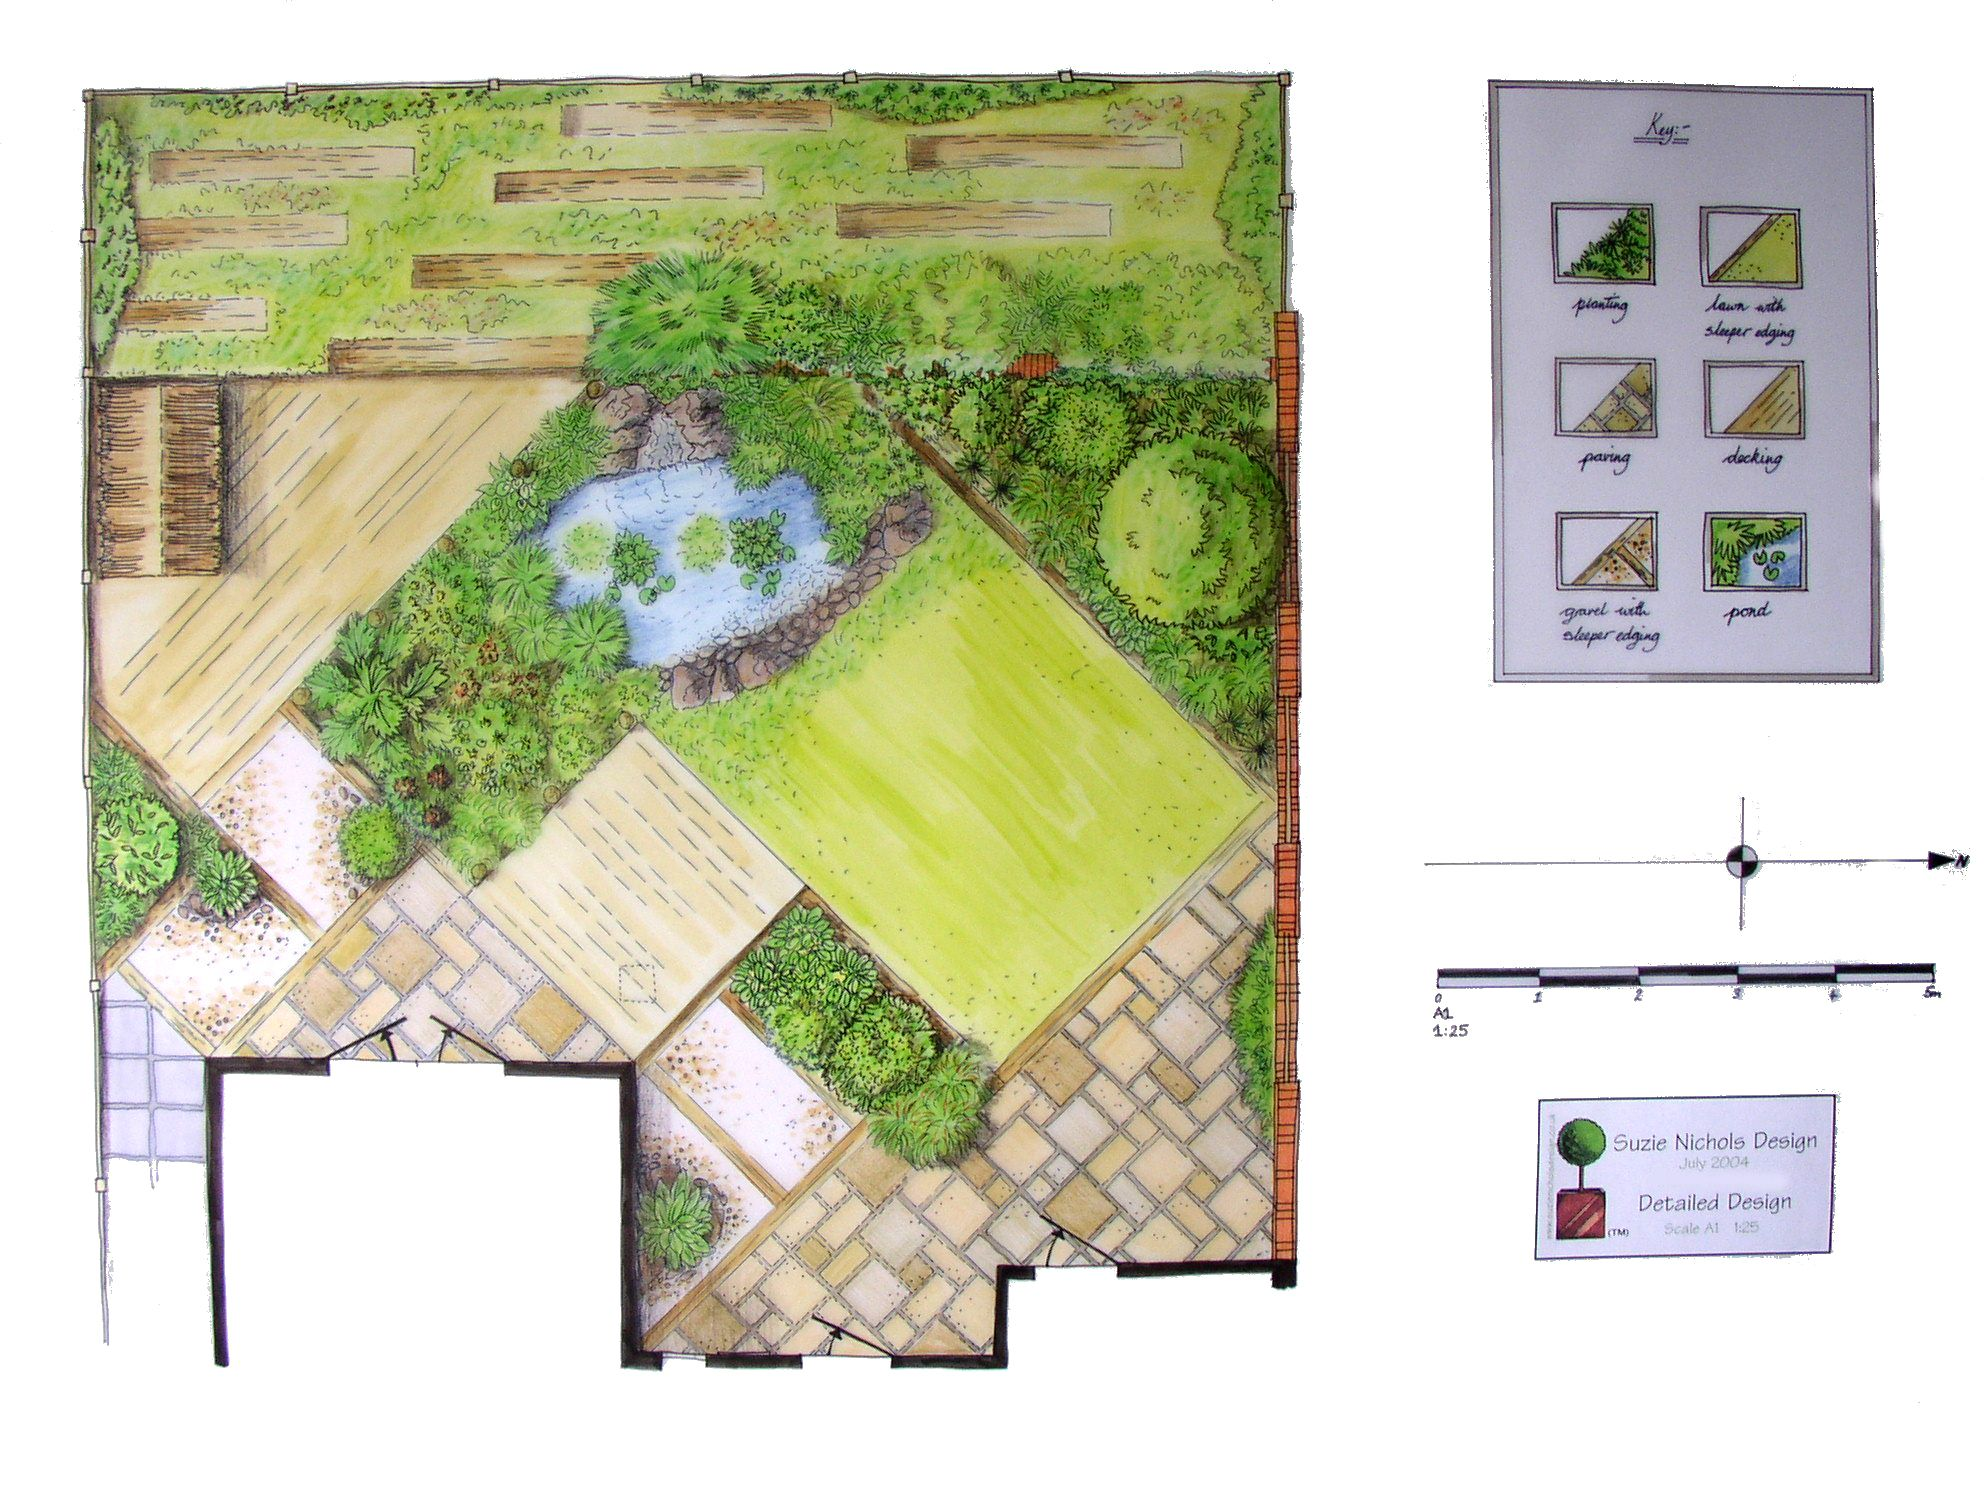 large image of suzie nichols u2019 wildlife garden design